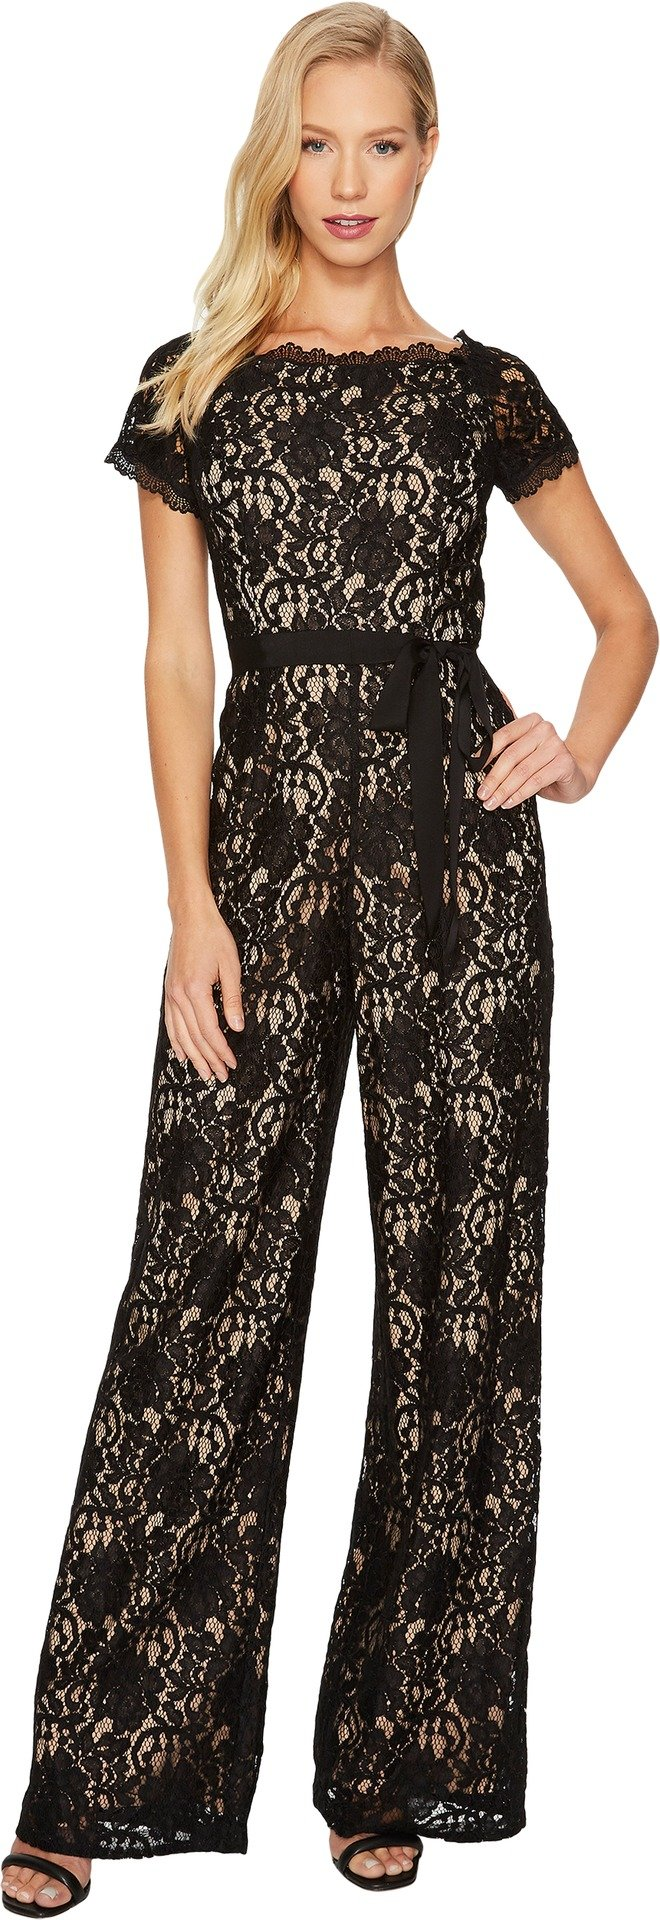 Adrianna Papell Women's Juliet Lace Jumpsuit Black/Nude 14 by Adrianna Papell